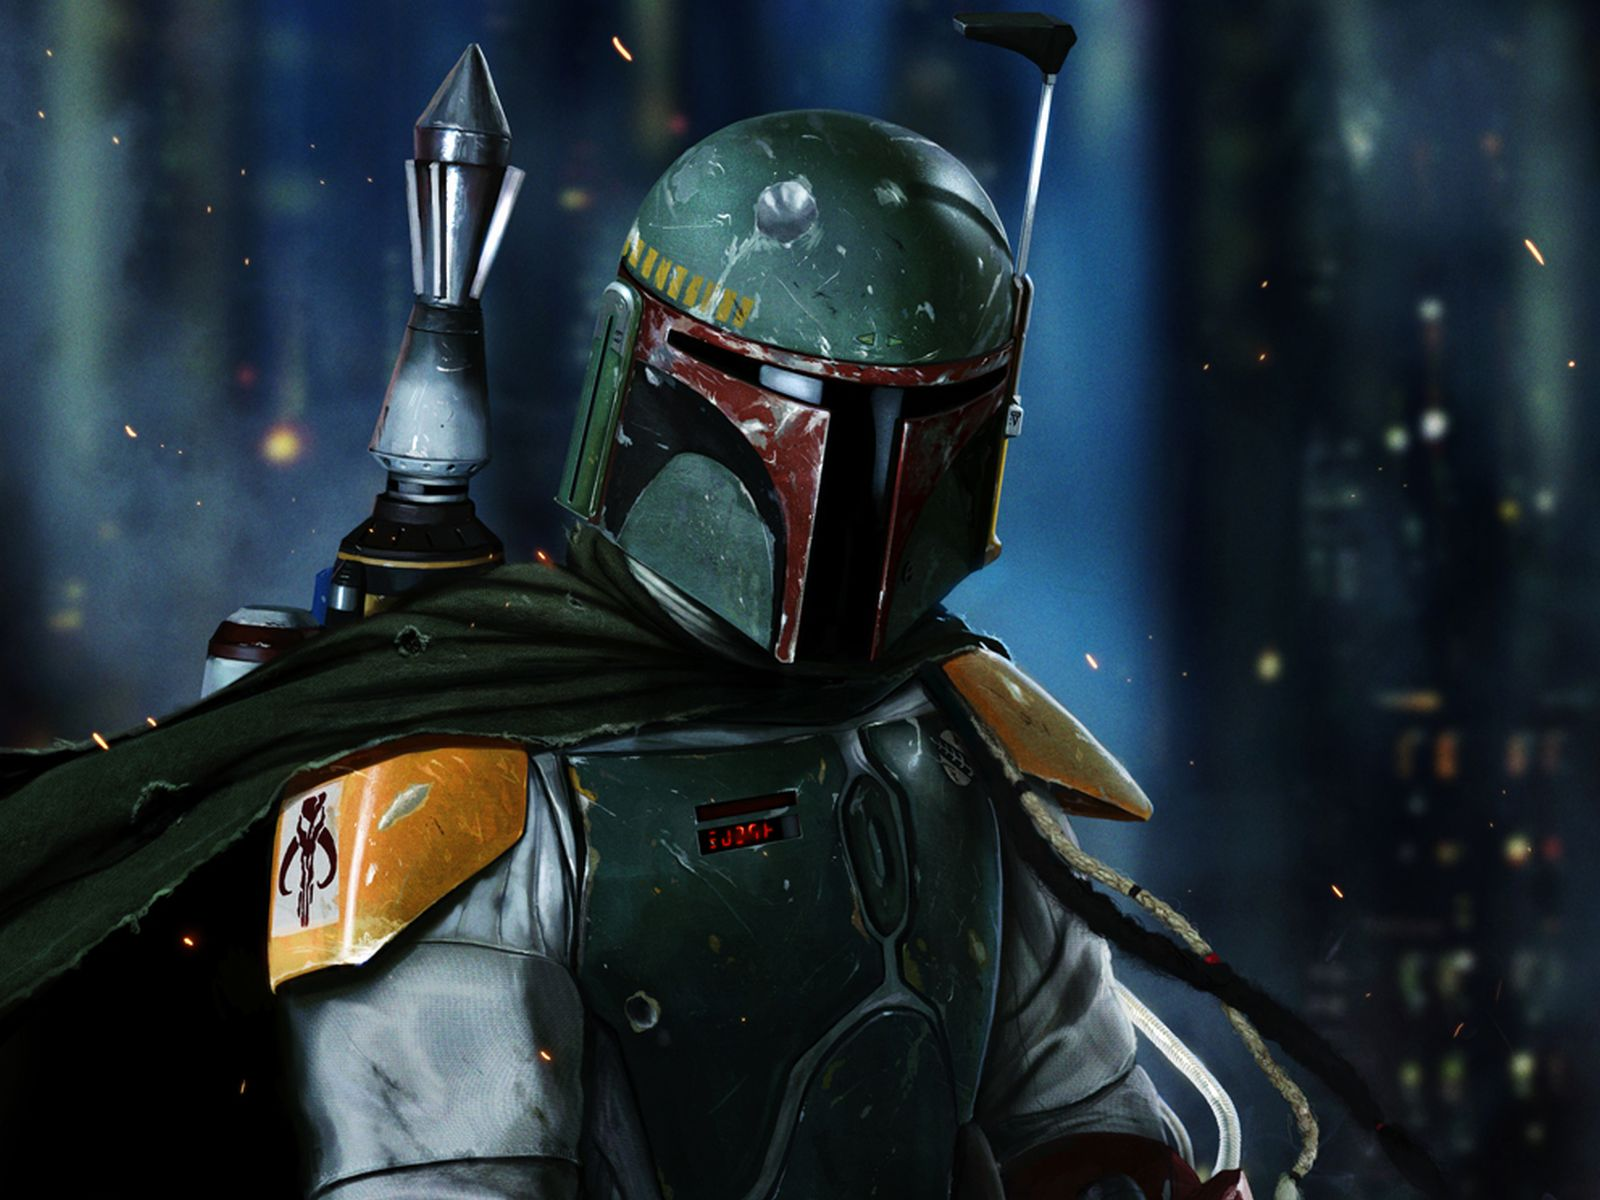 Boba Fett Wallpaper 2 1600x1200